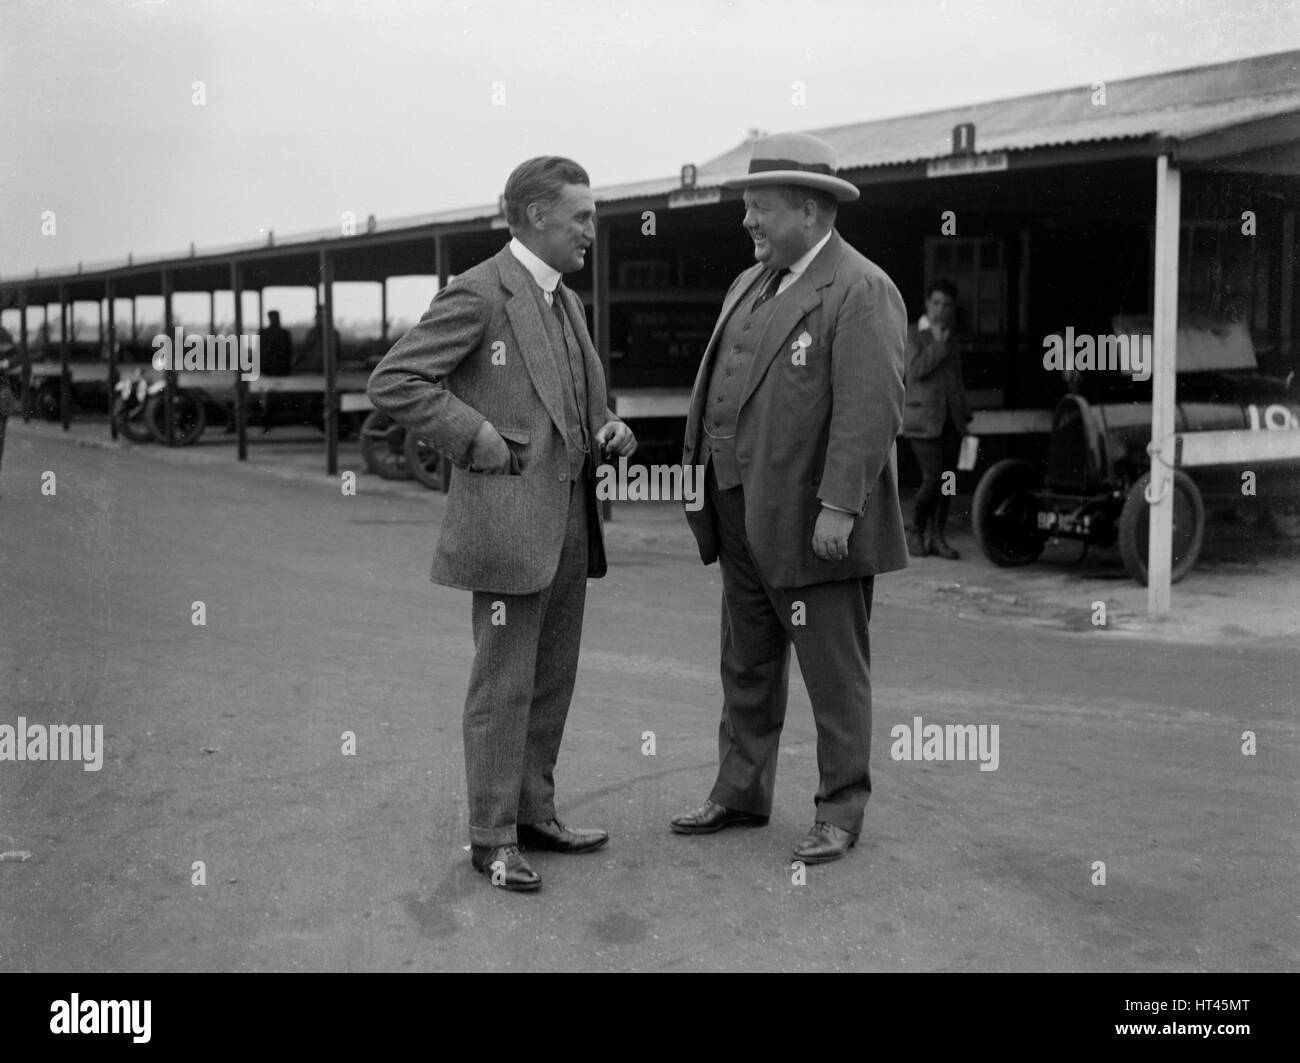 Two men chatting at Brooklands motor racing circuit, Surrey, 1920s. Artist: Bill Brunell. - Stock Image